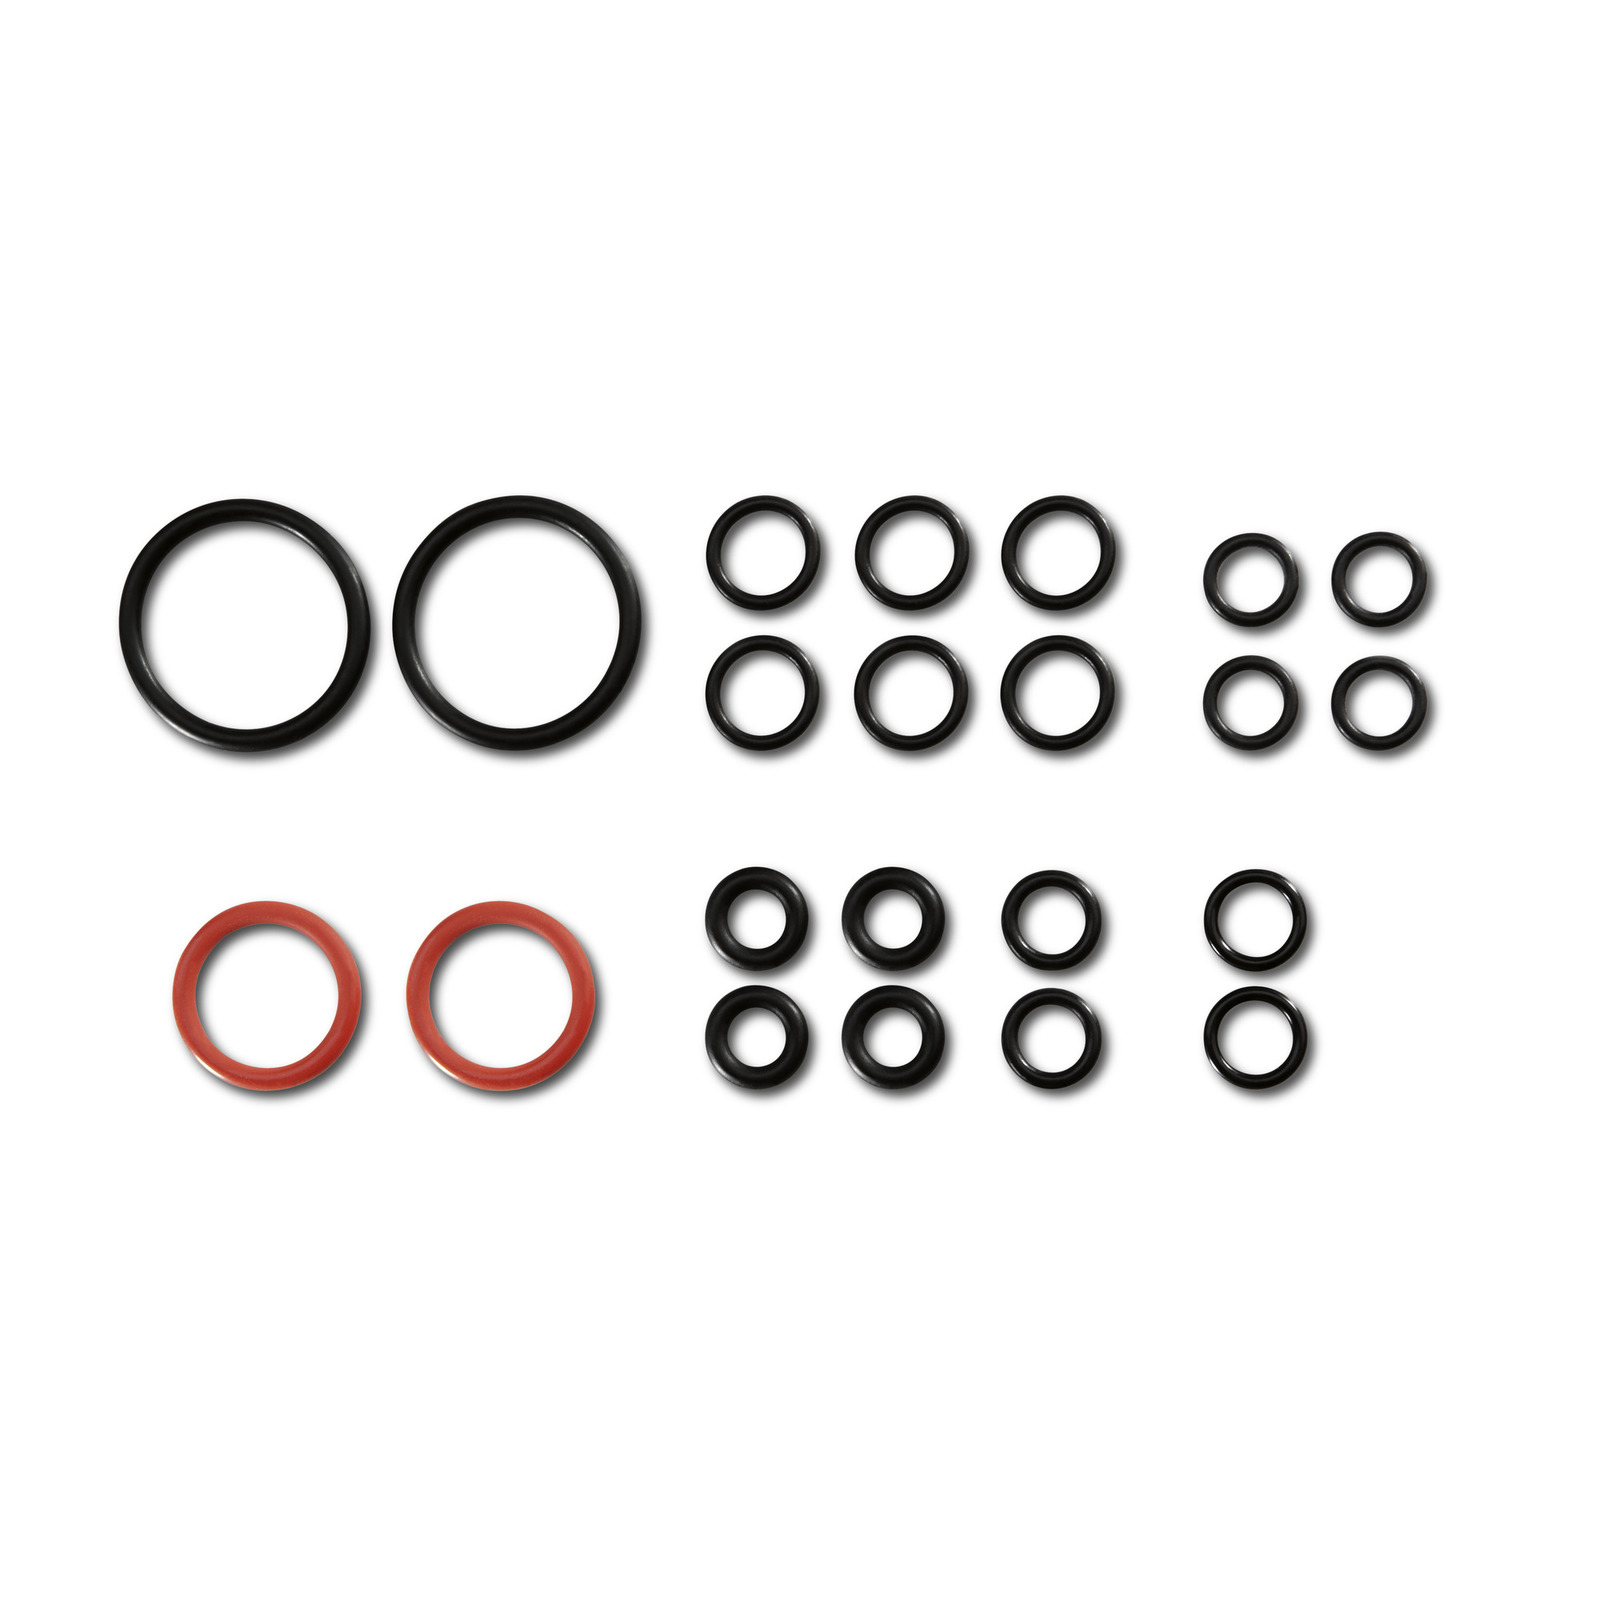 Replacement o ring set kärcher uk